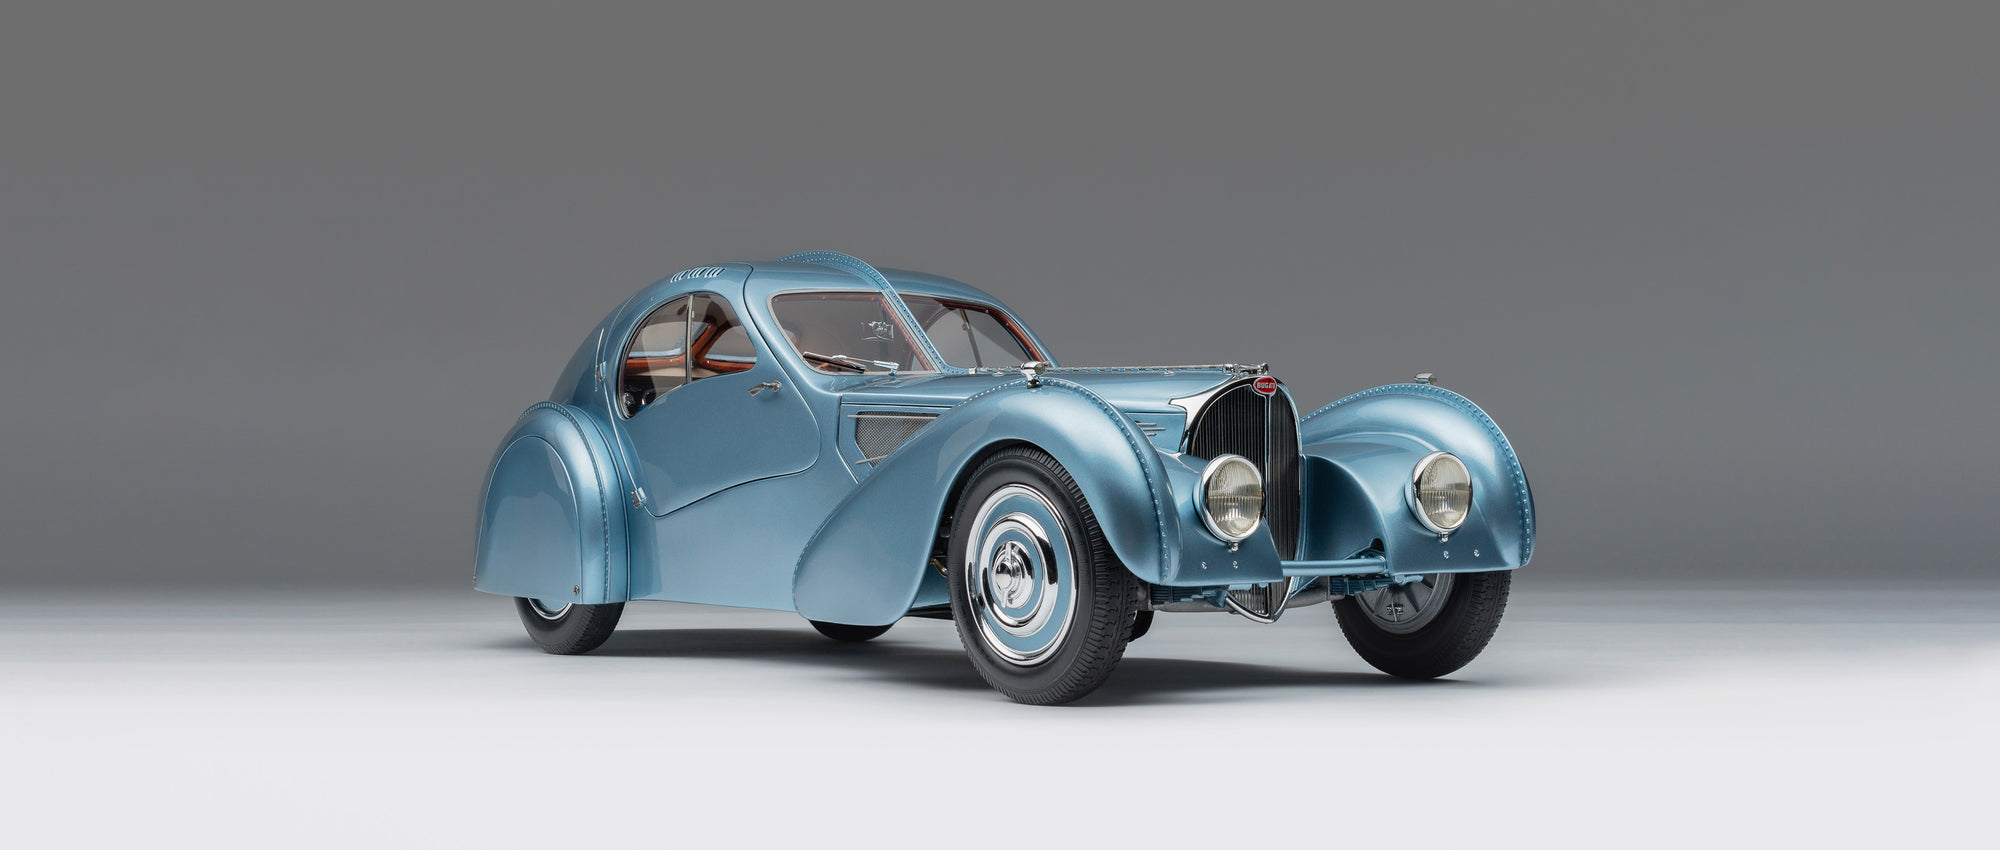 Bugatti 57SC Atlantic (1938) 'The Lord Rothschild'